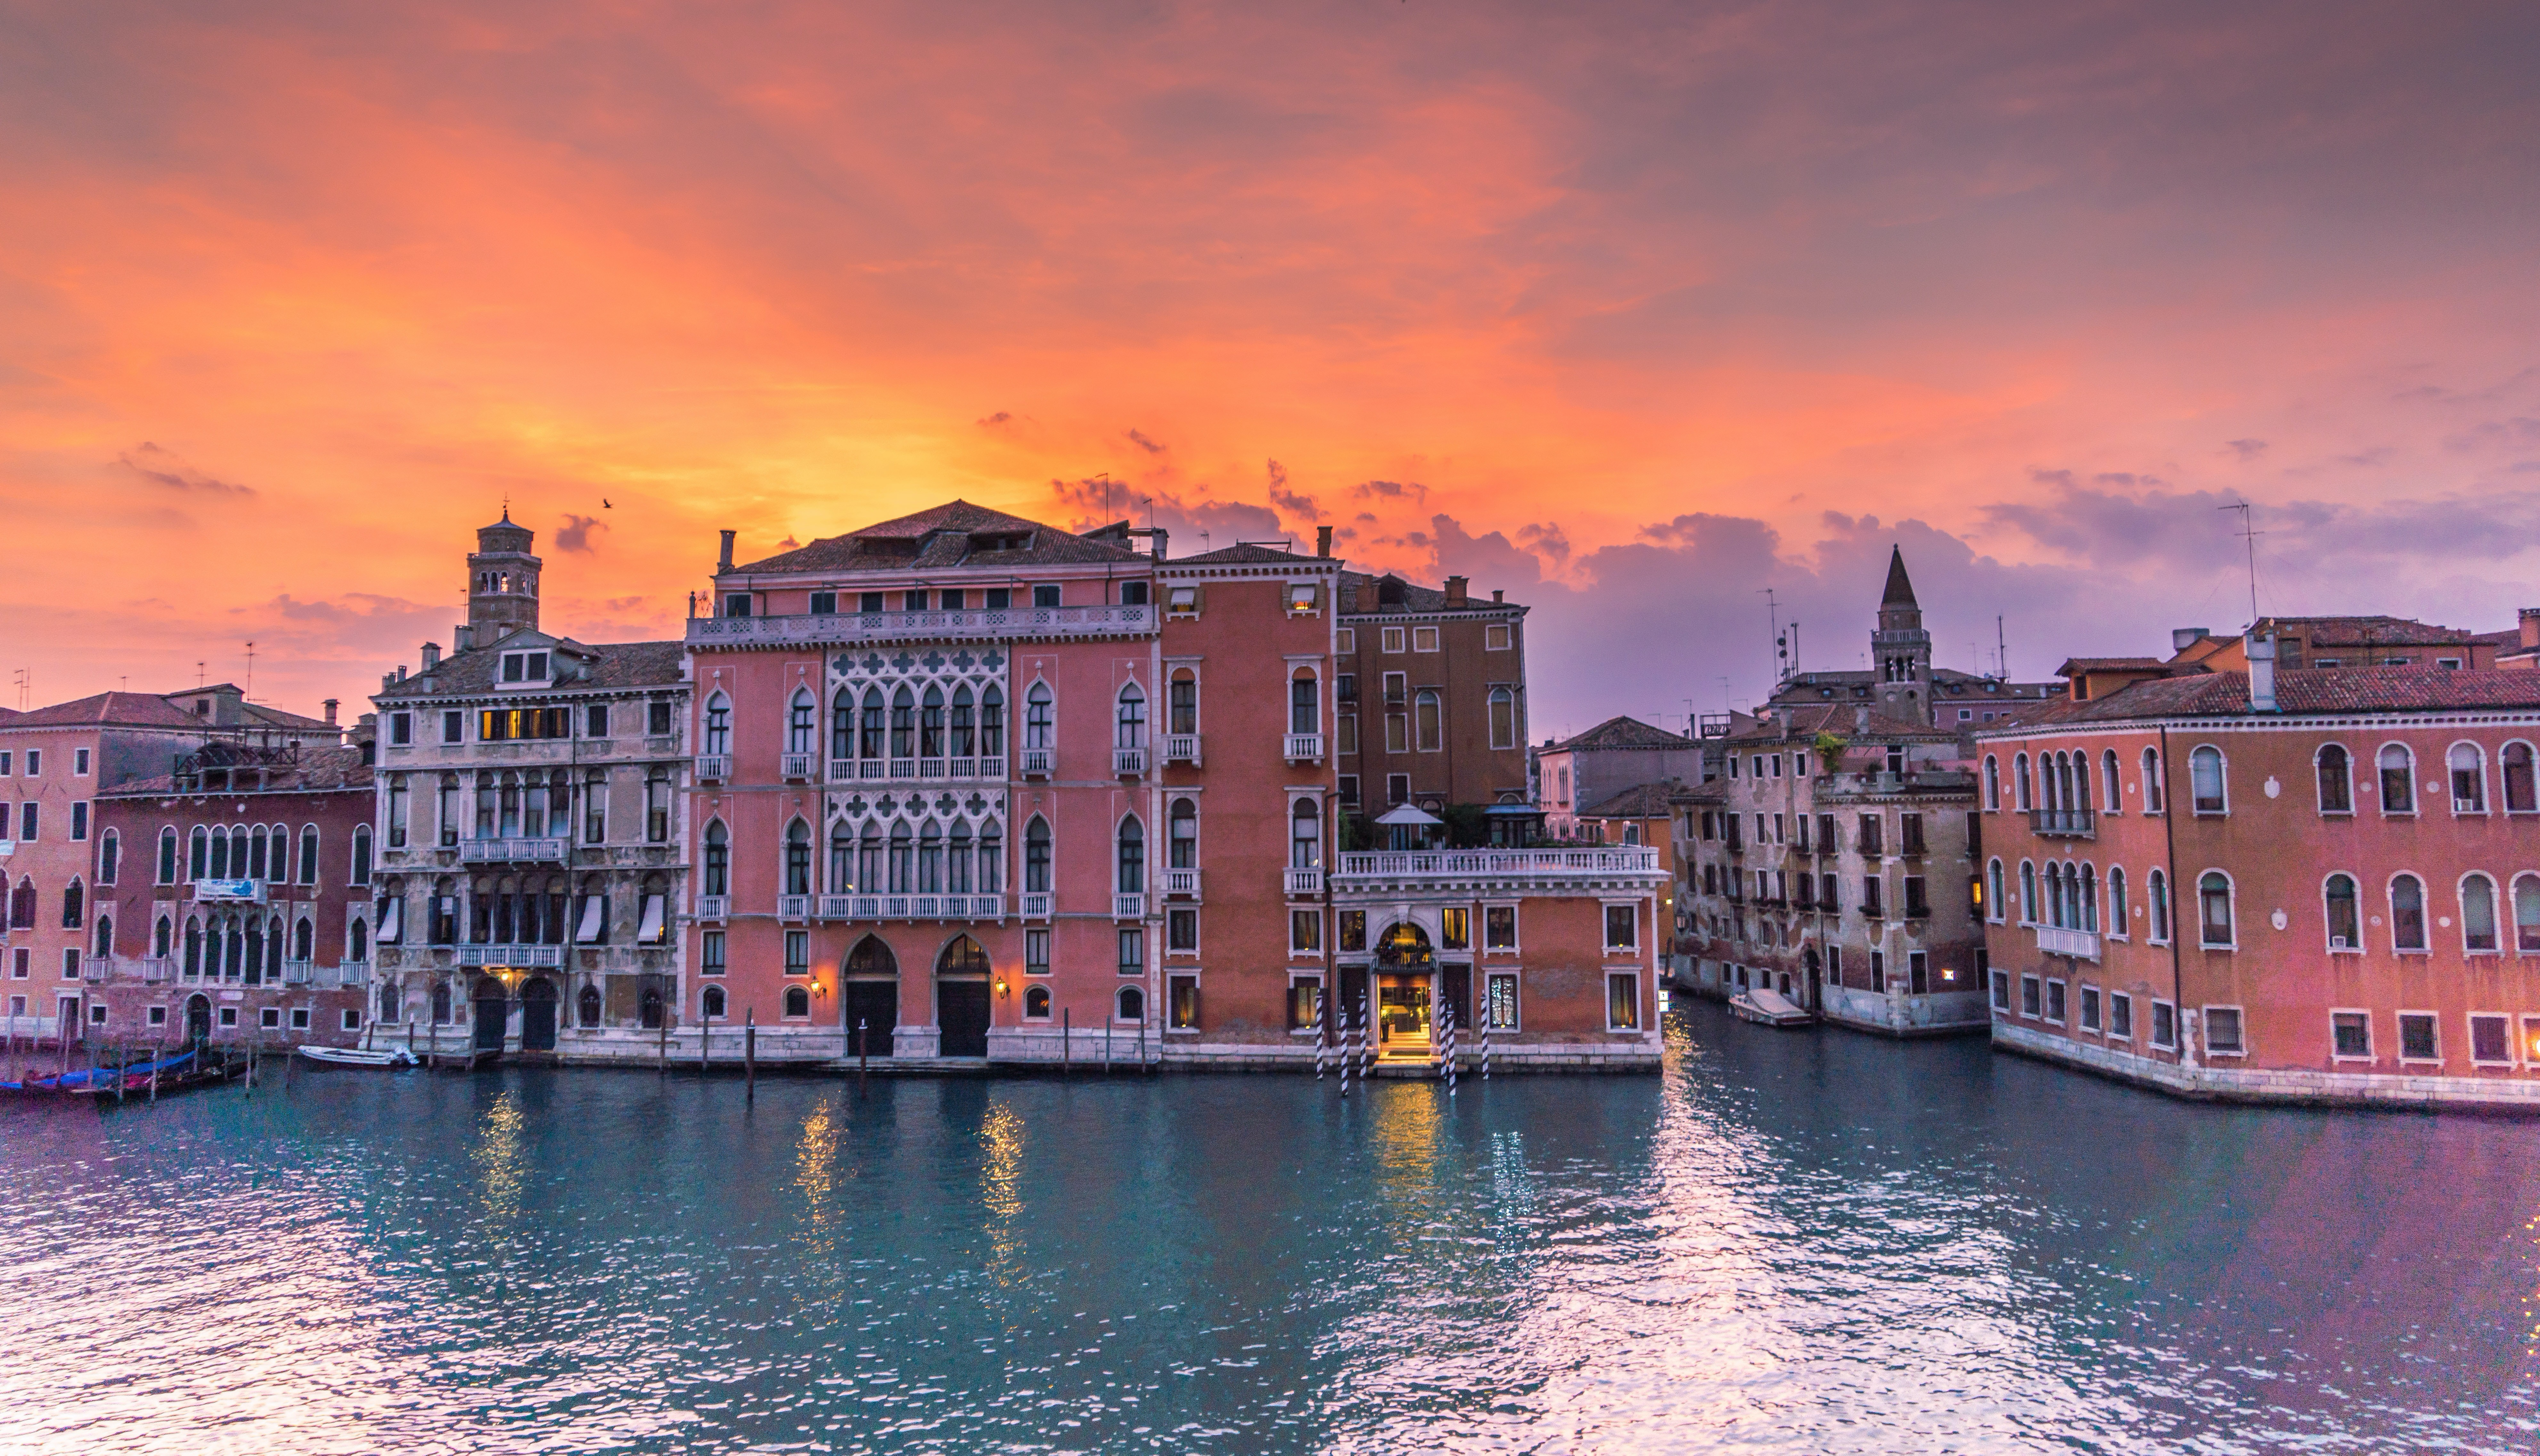 The G20 meets in Venice in July 2021